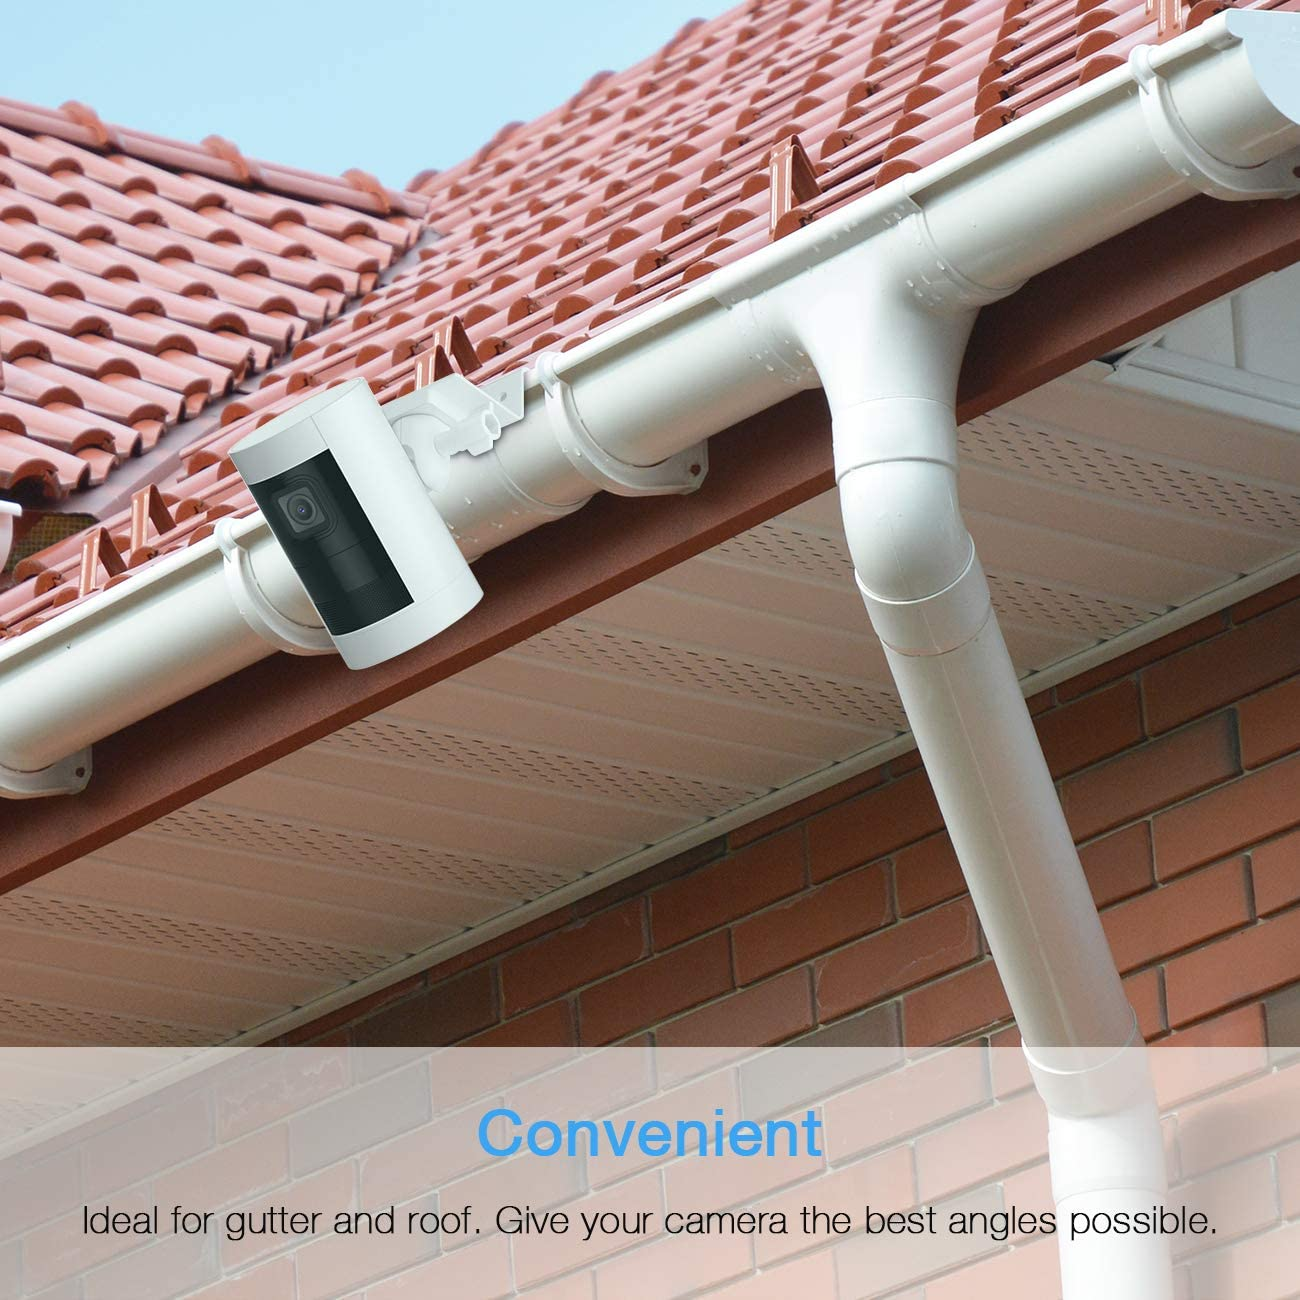 HOLACA Gutter Mount for Ring Stick Up Cam Plug-in HD Security Camera and Ring Stick Up Cam Battery HD Security Camera-Weatherproof-Give a Perfect Angle for Your Ring Stick Up Cam